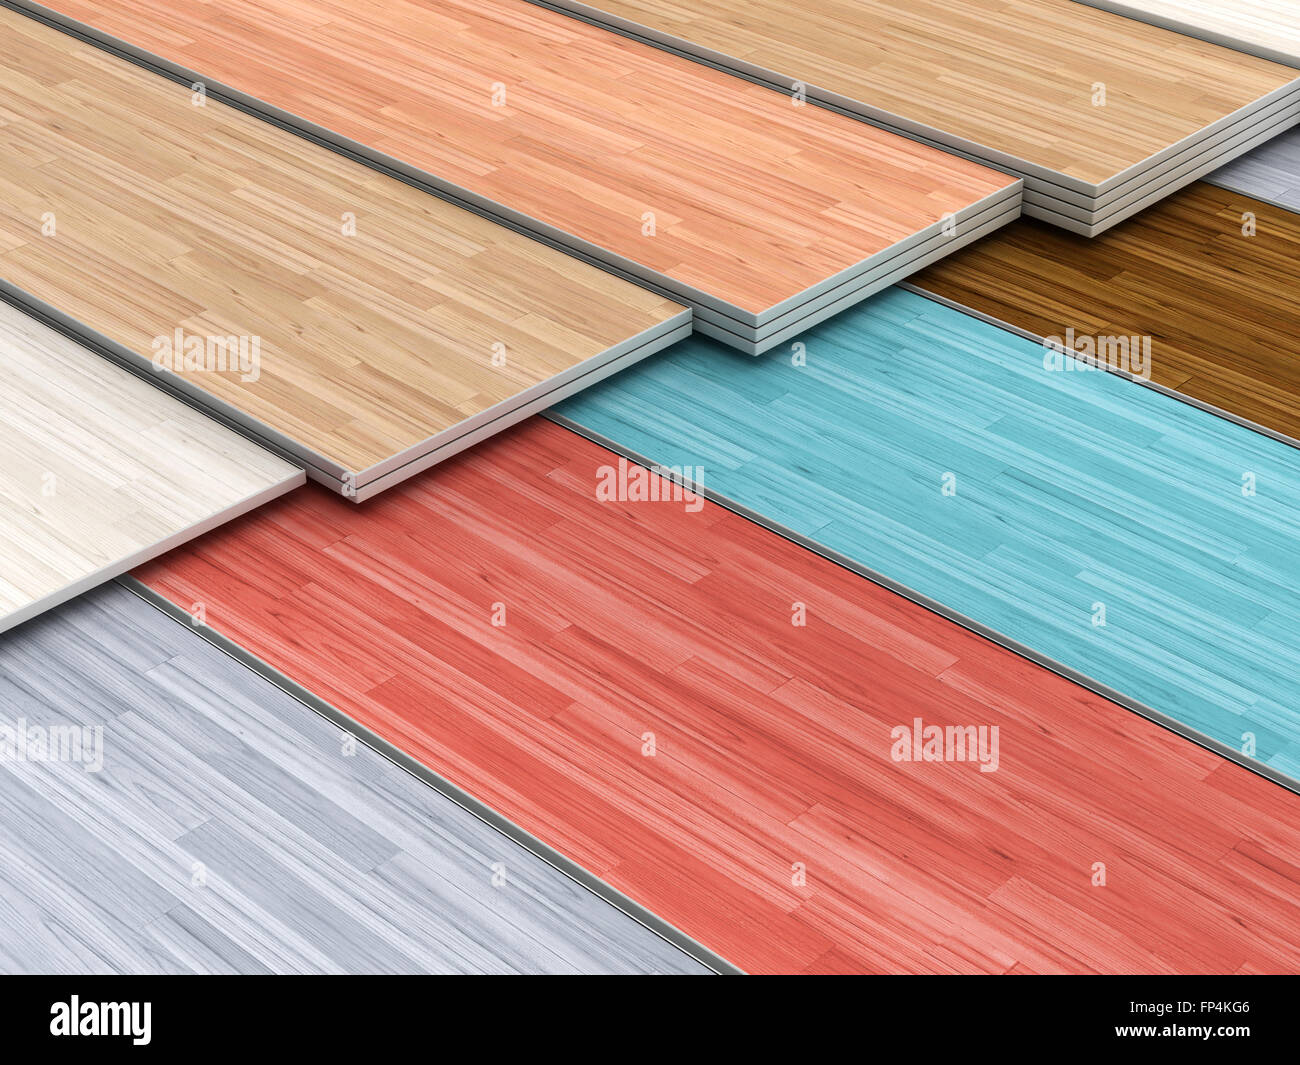 Multi Colored Parquet Flooring Boards With Various Textures